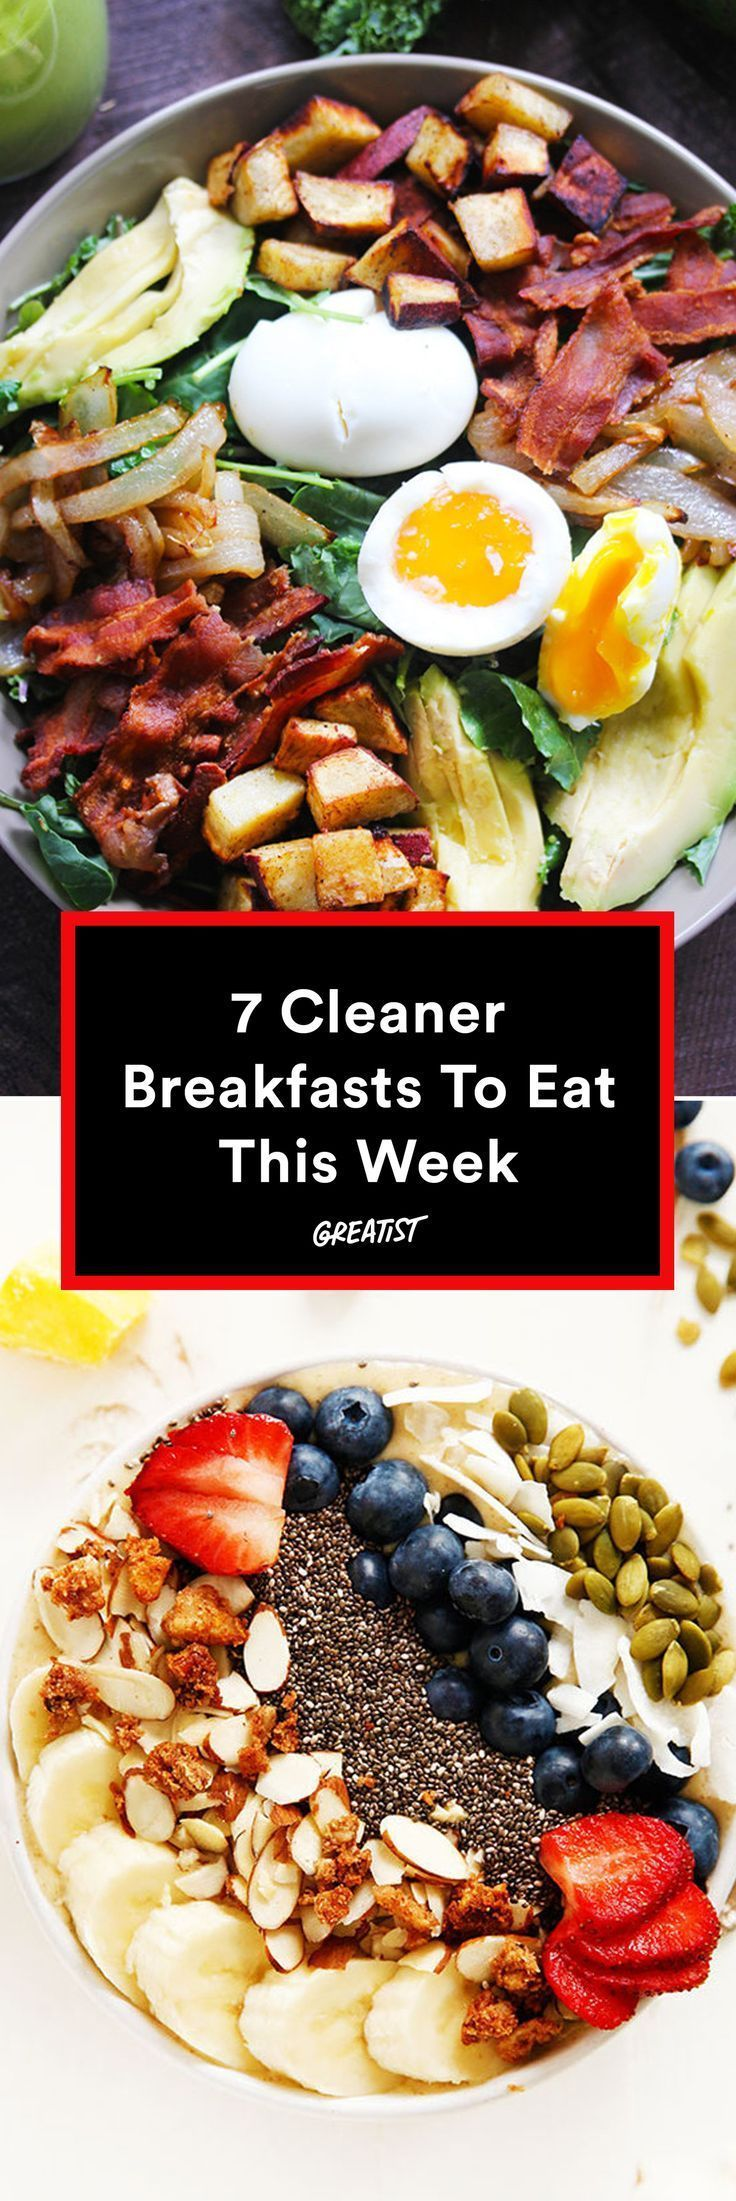 7 Clean Paleo Breakfasts to Brighten Your Morning advise